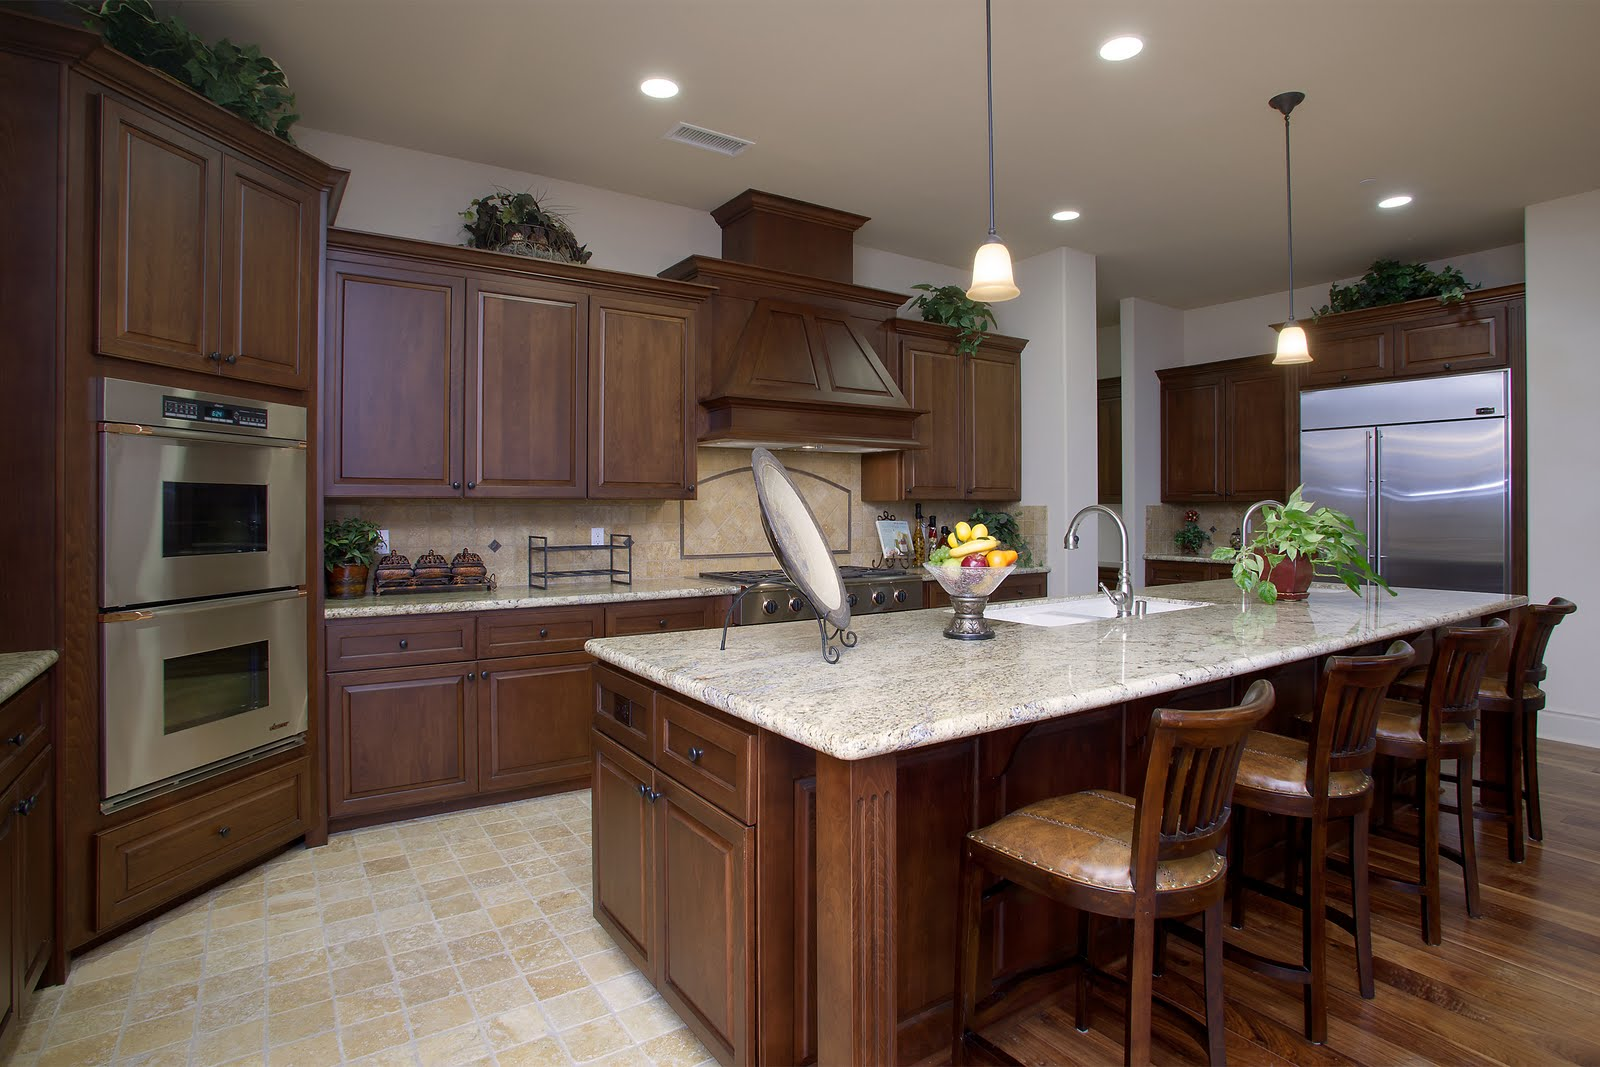 Kitchen model homes kitchen design photos 2015 Home kitchen